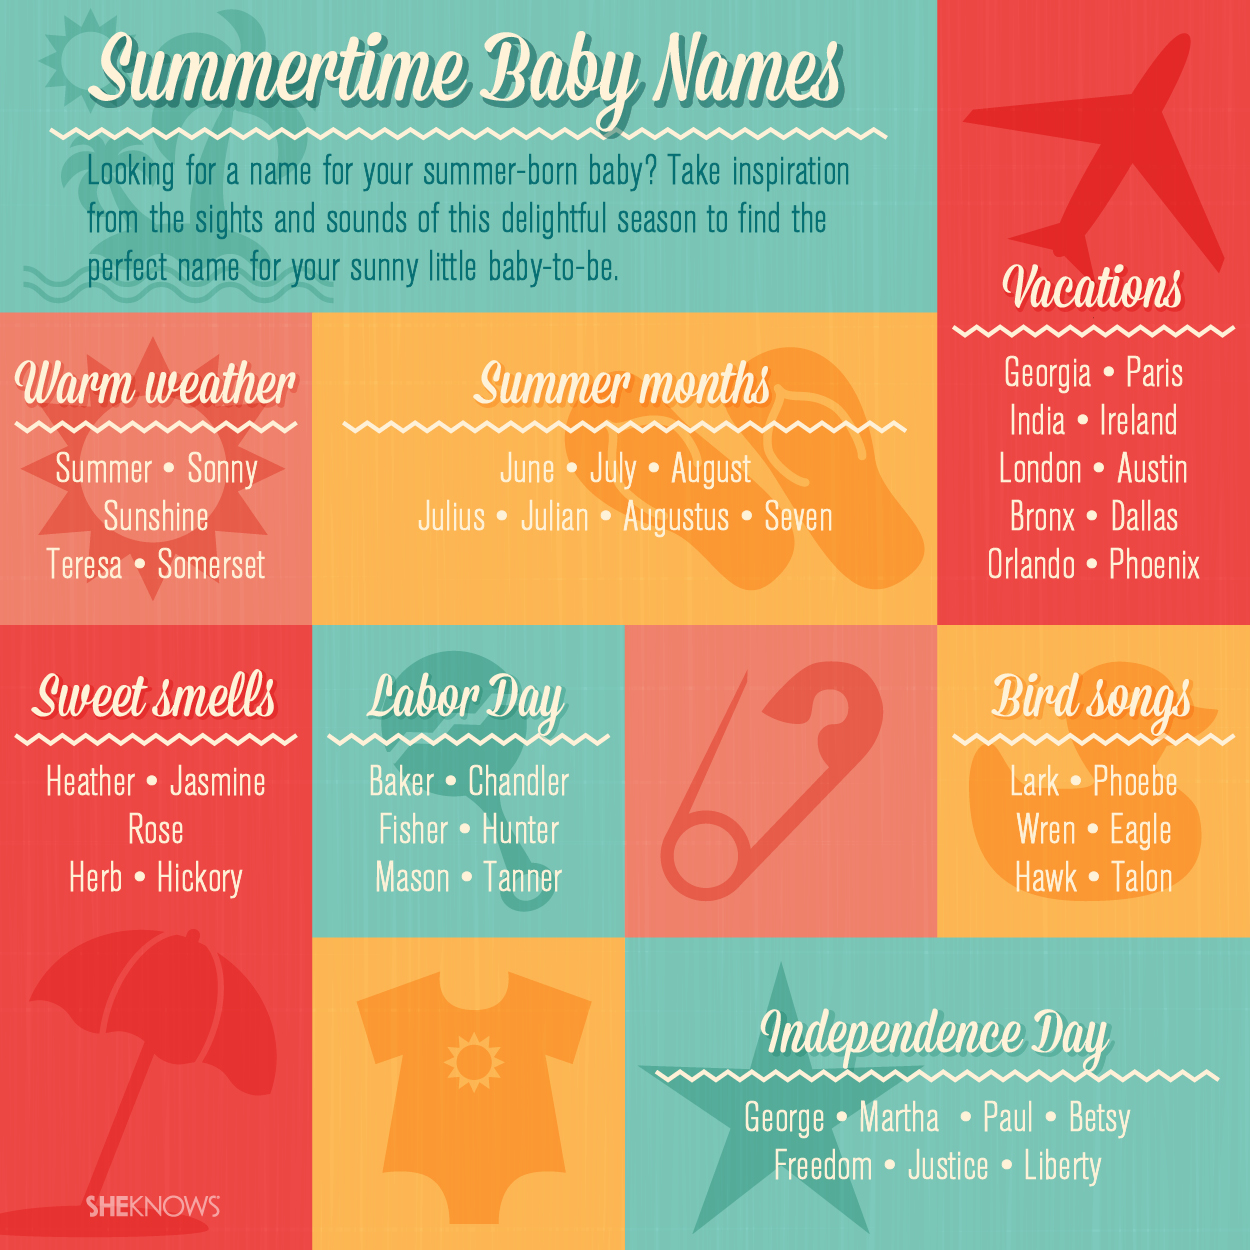 Baby names for summer babies